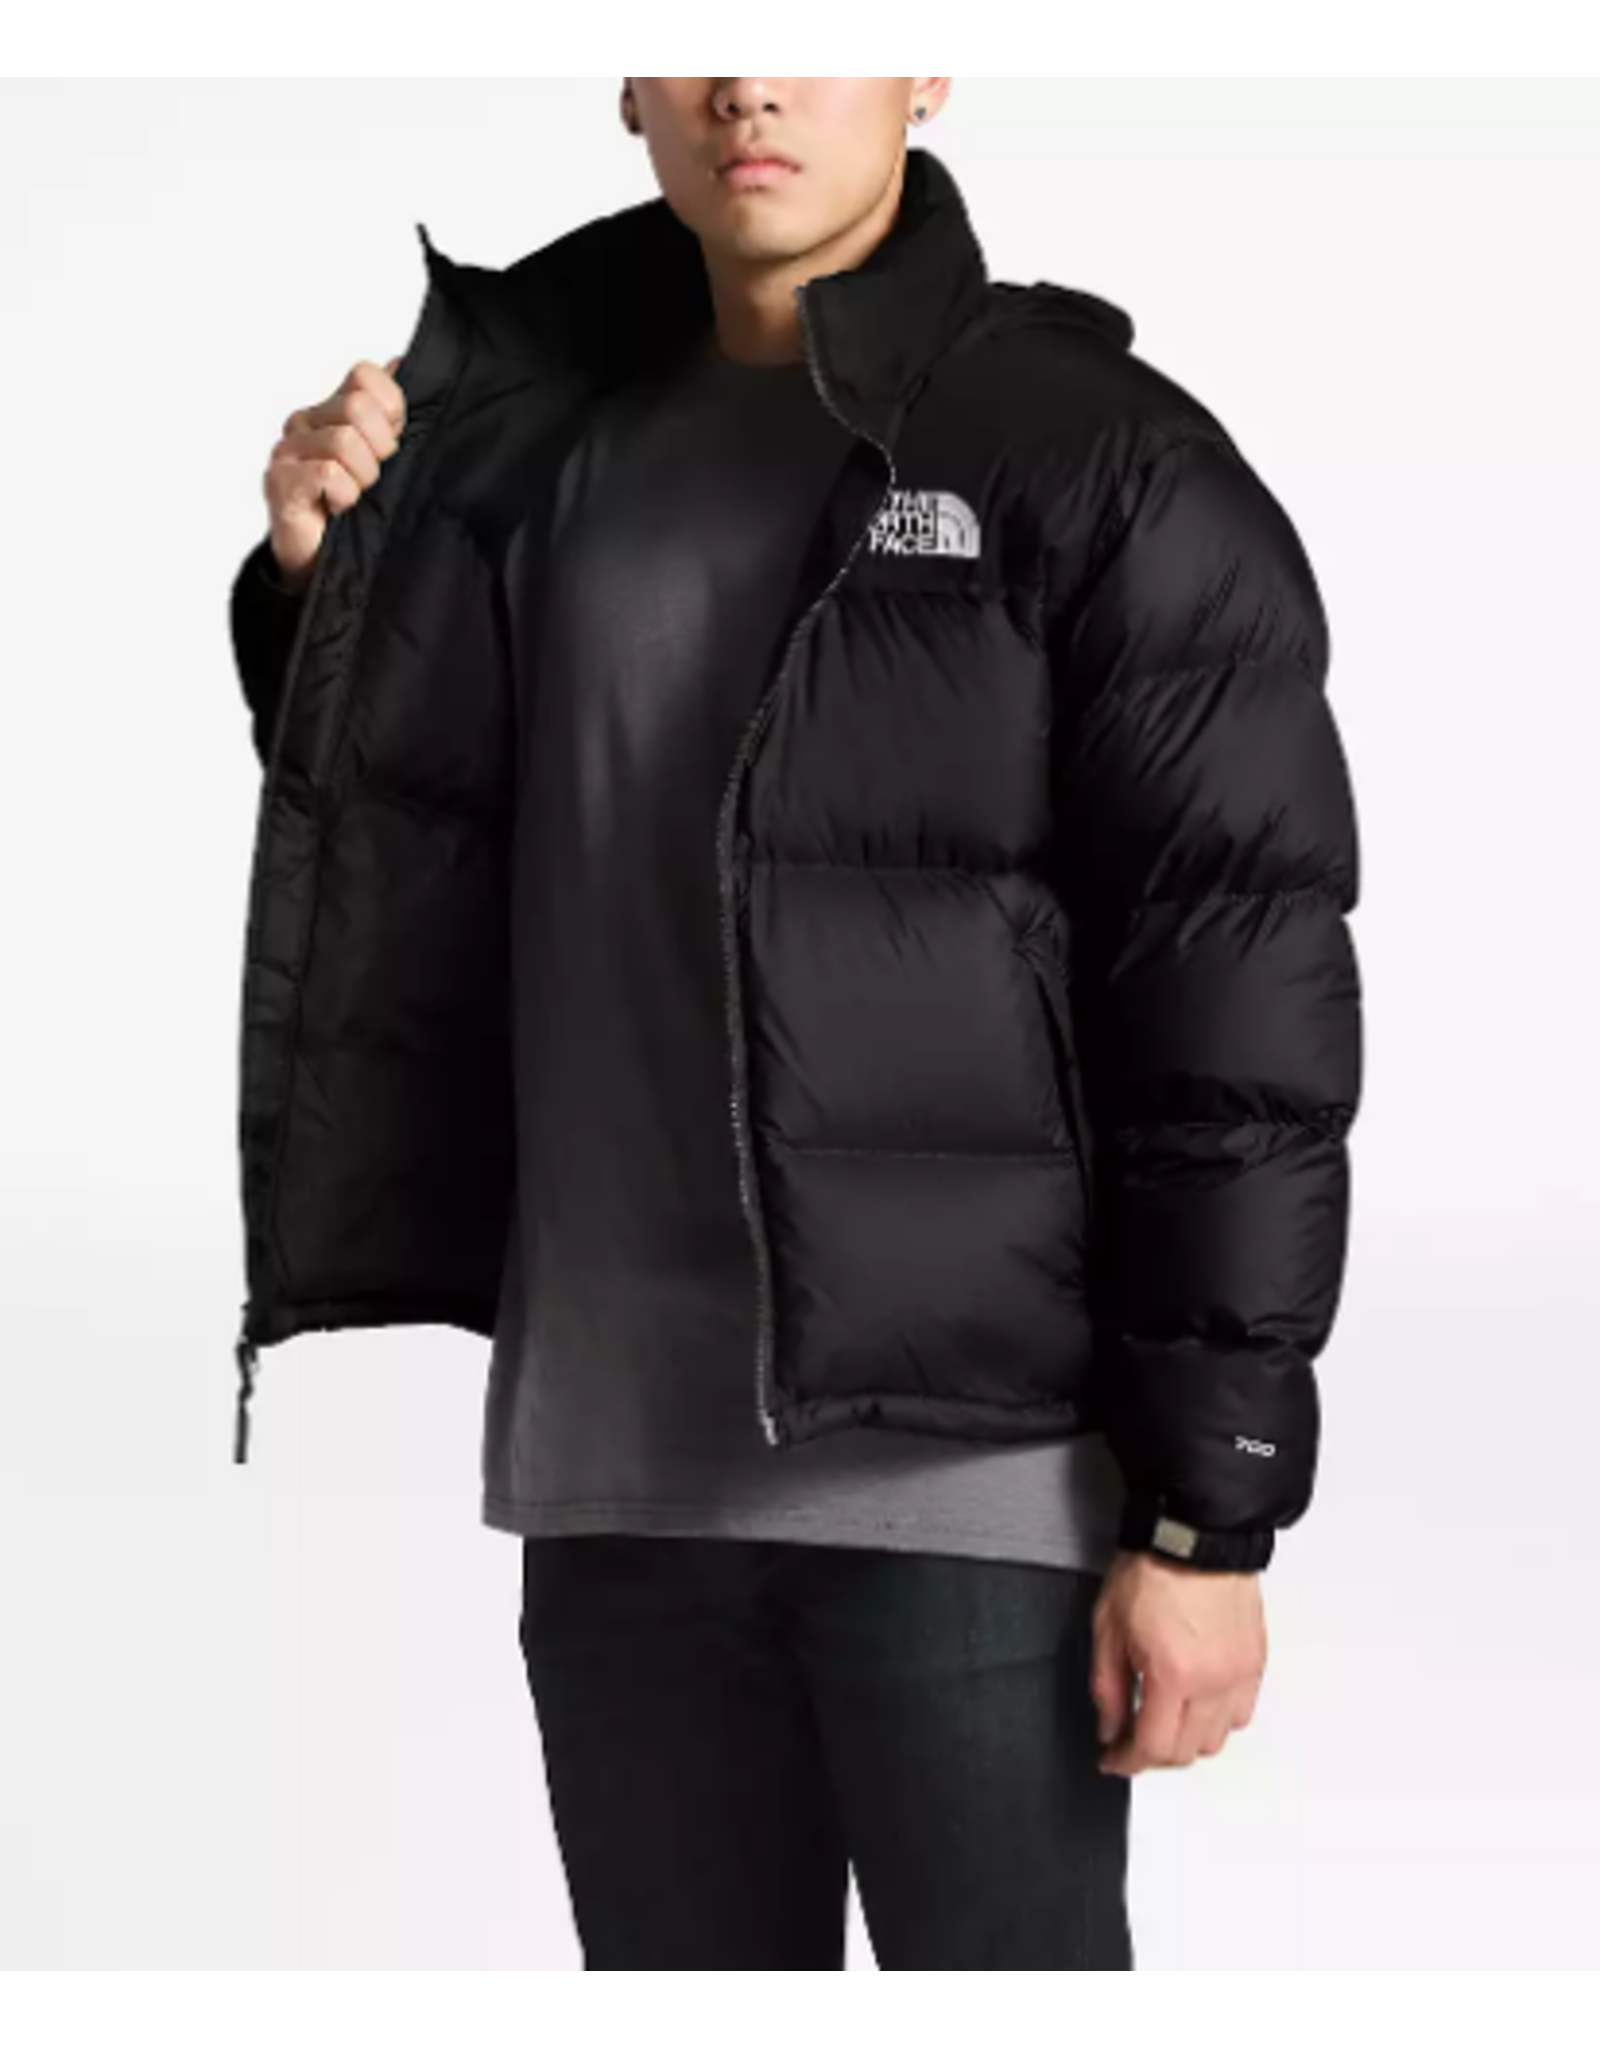 North Face 1996 Retro Nuptse Jacket - Black